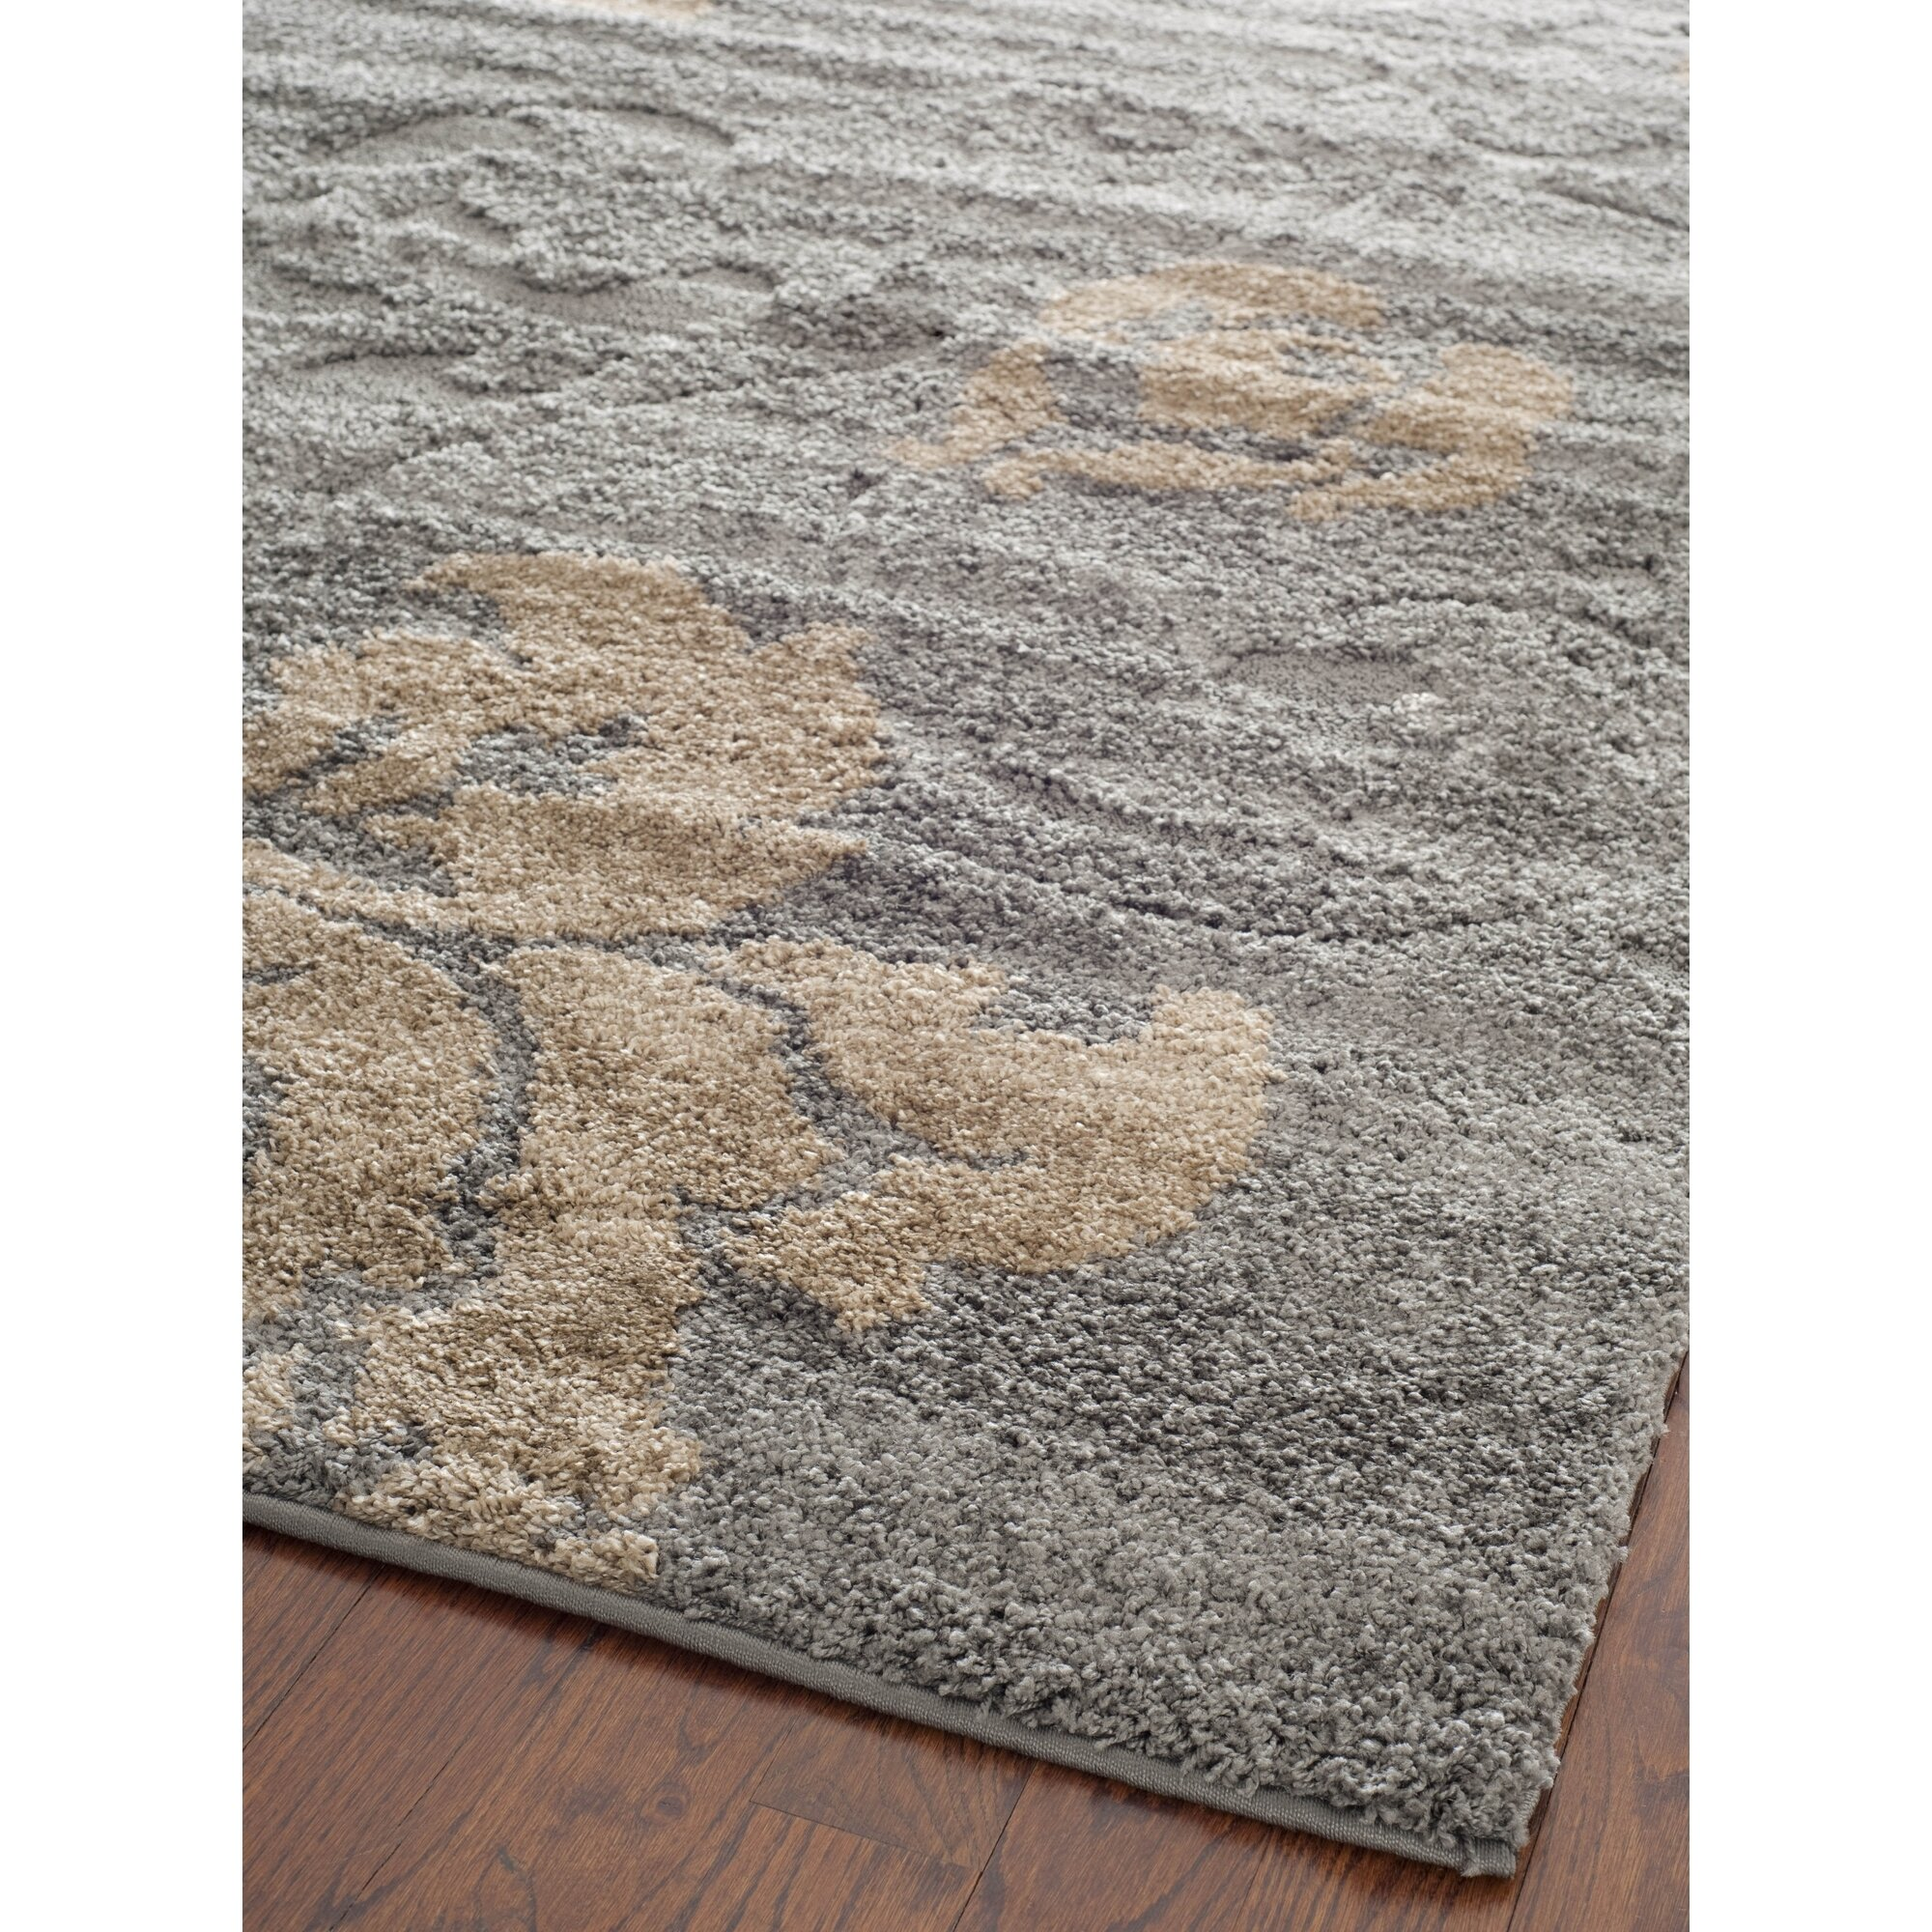 House of hampton reubens shag grey beige area rug for Grey and tan rug